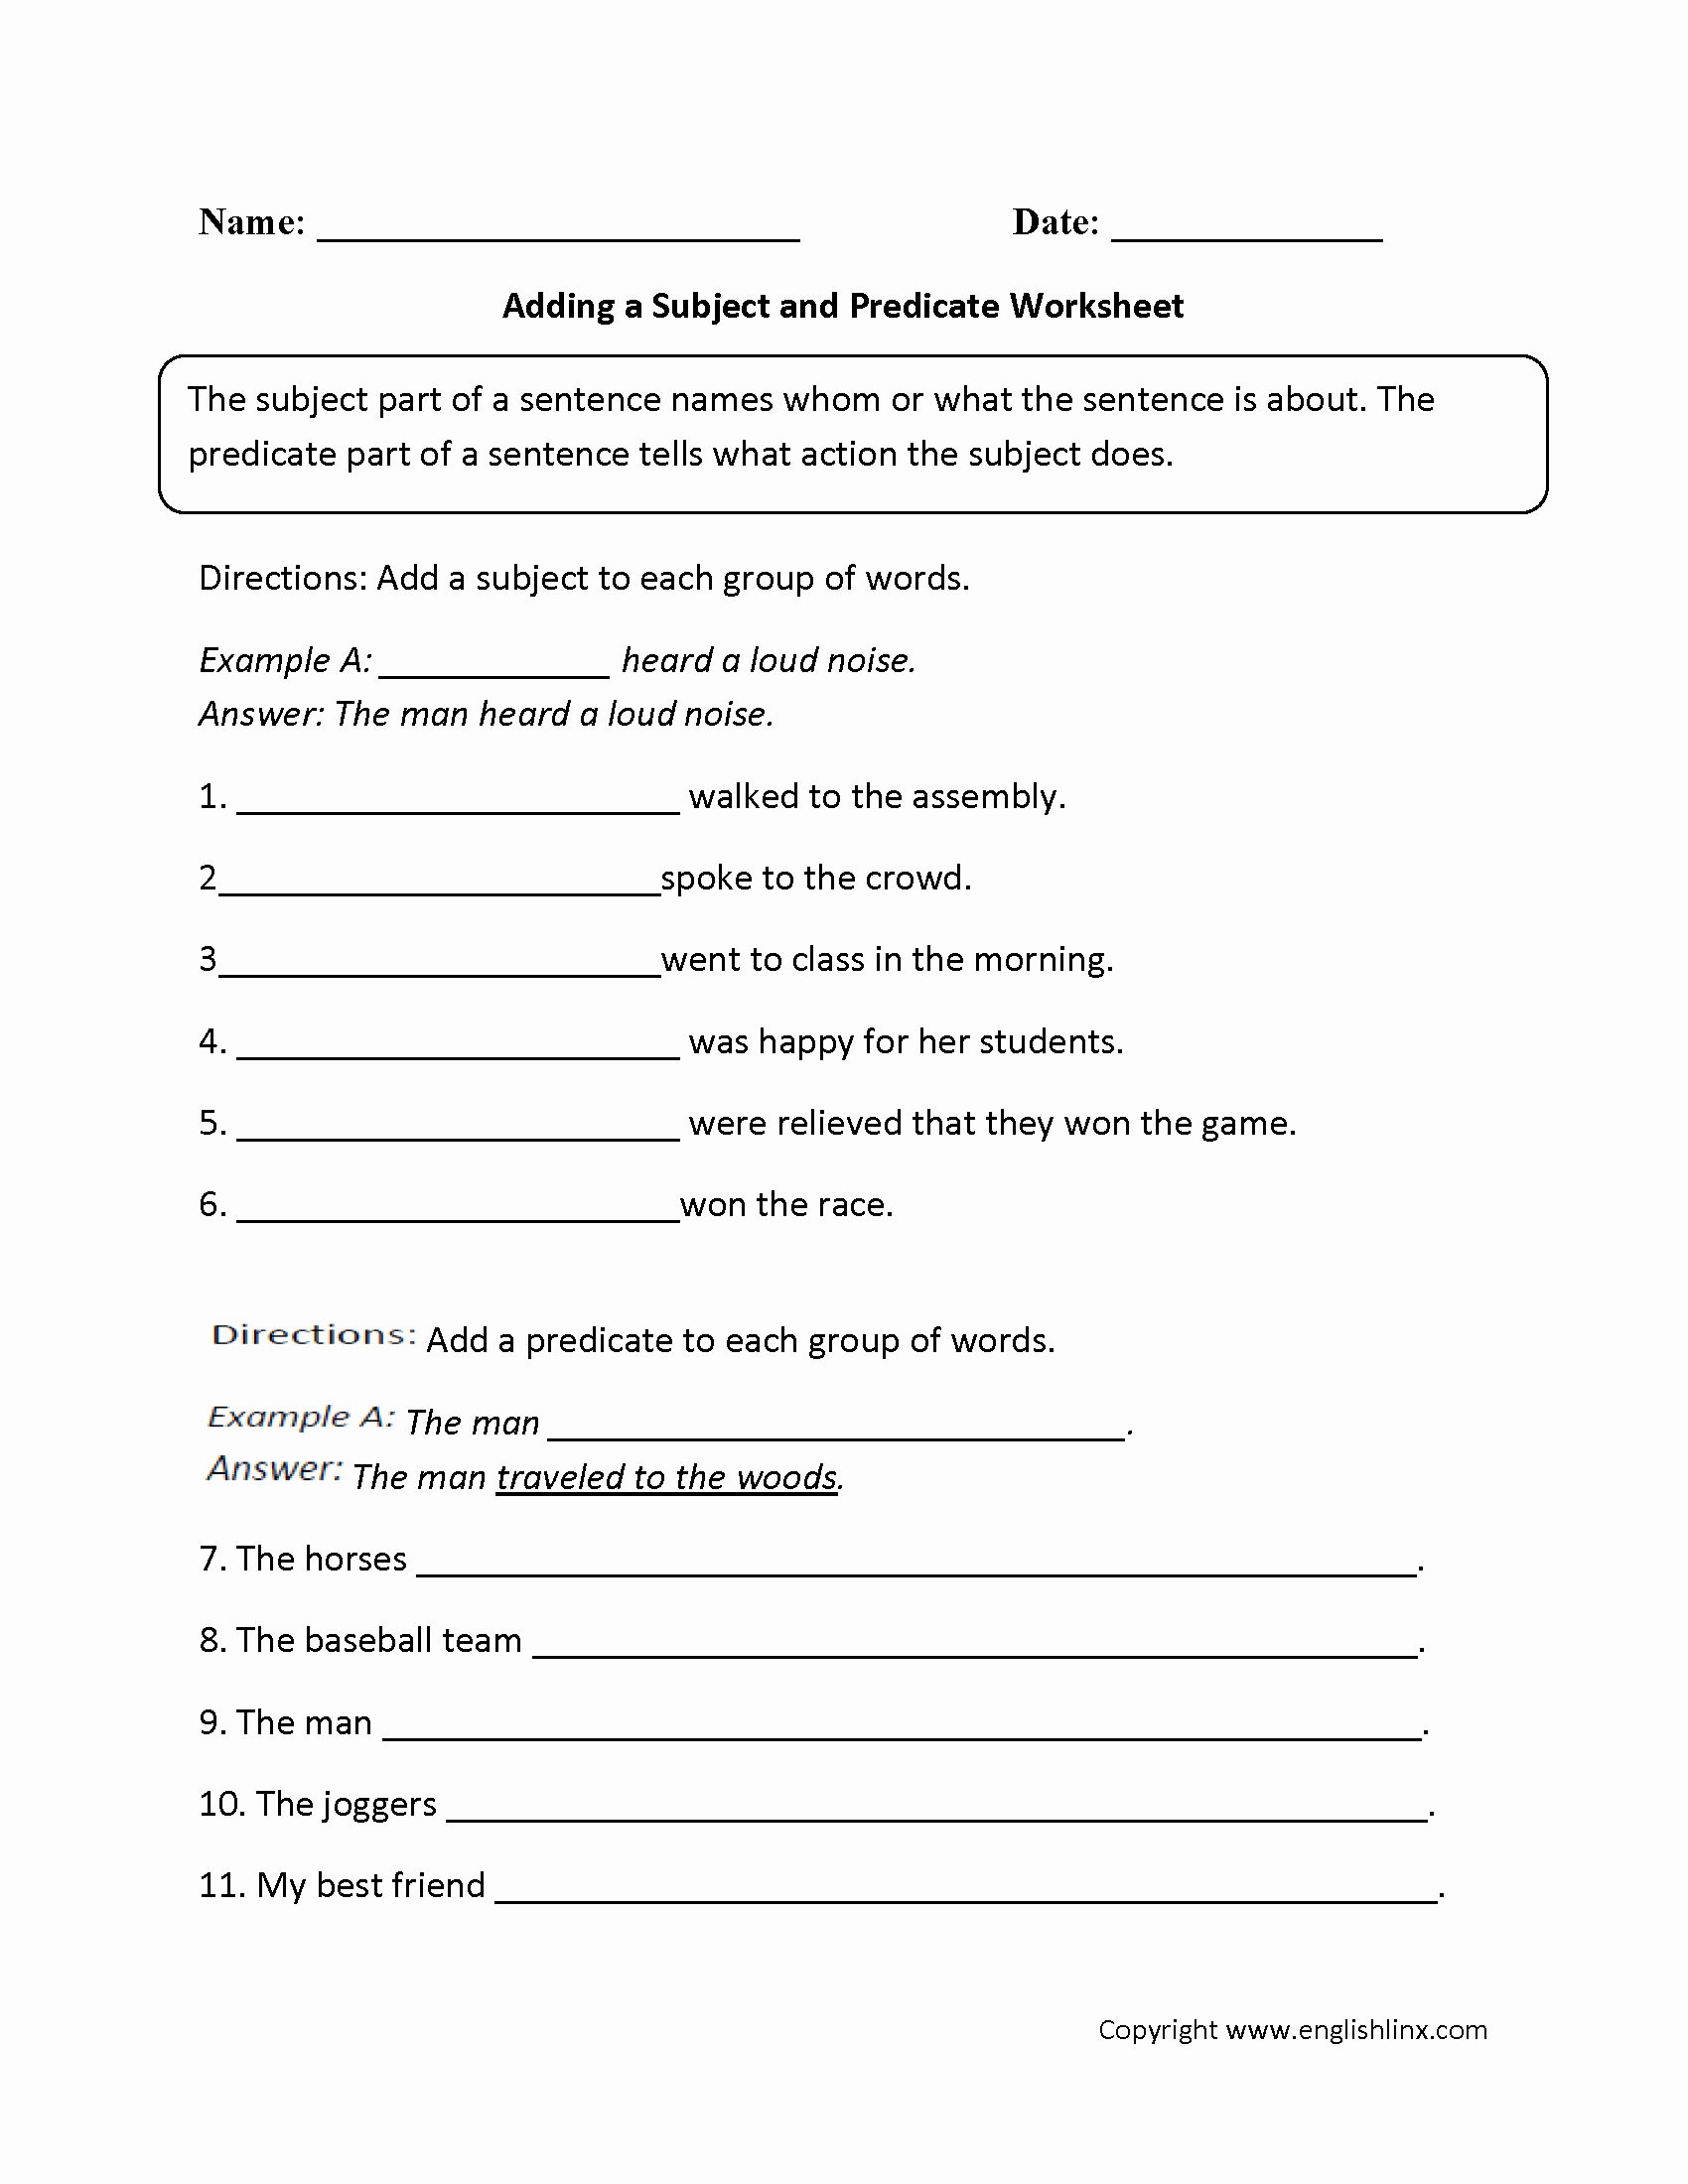 Subjects and Predicates Worksheet Fresh Adding A Subject and Predicate Worksheet